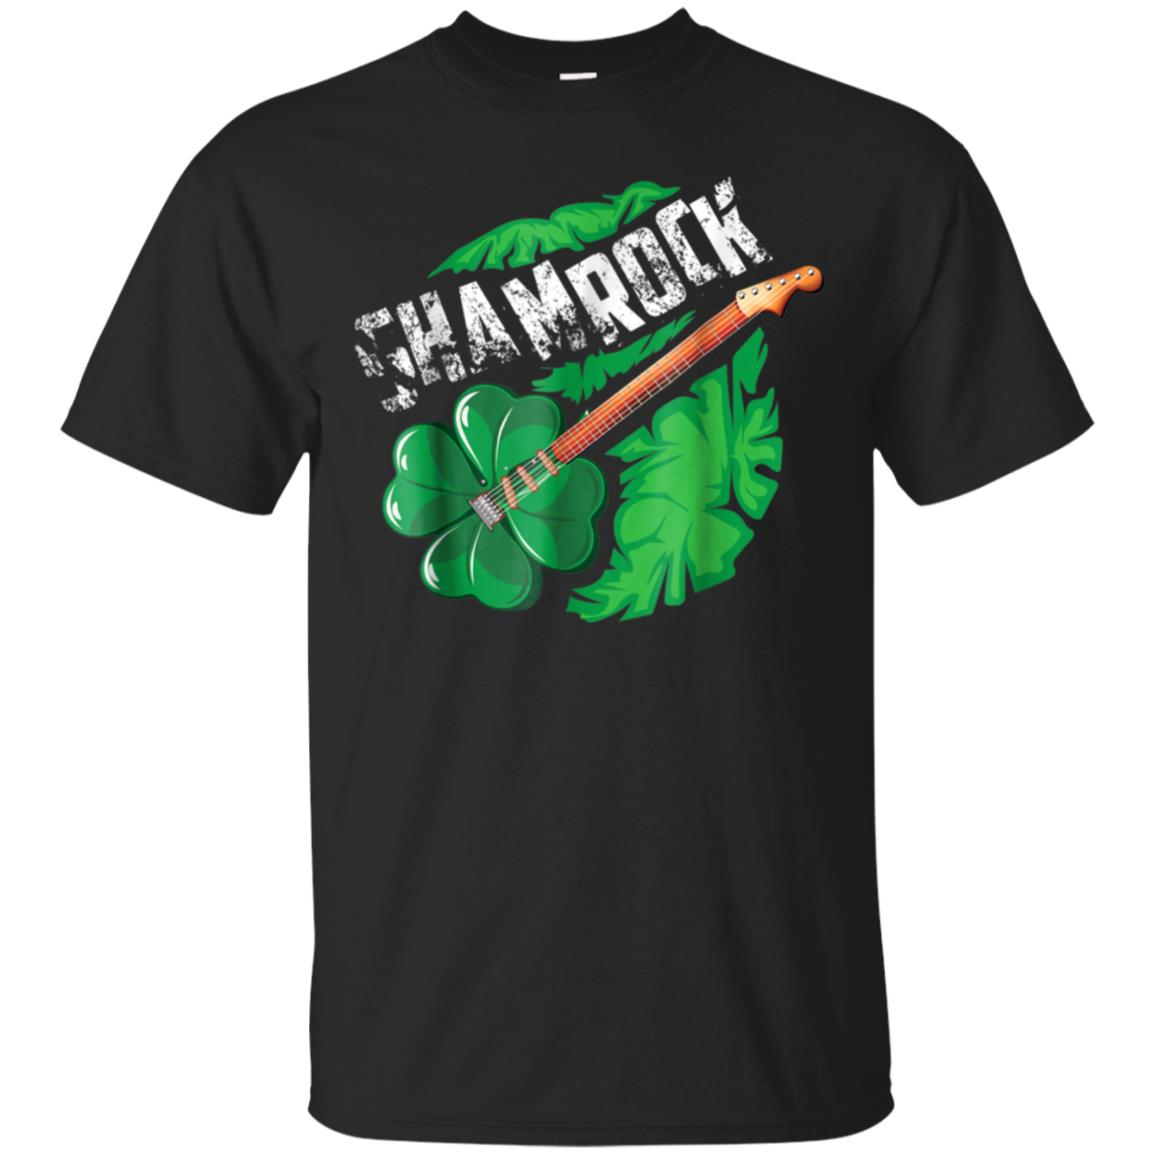 Shamrock Shirt  Cute Irish Shamrock Guitar T-shirt Gift 99promocode